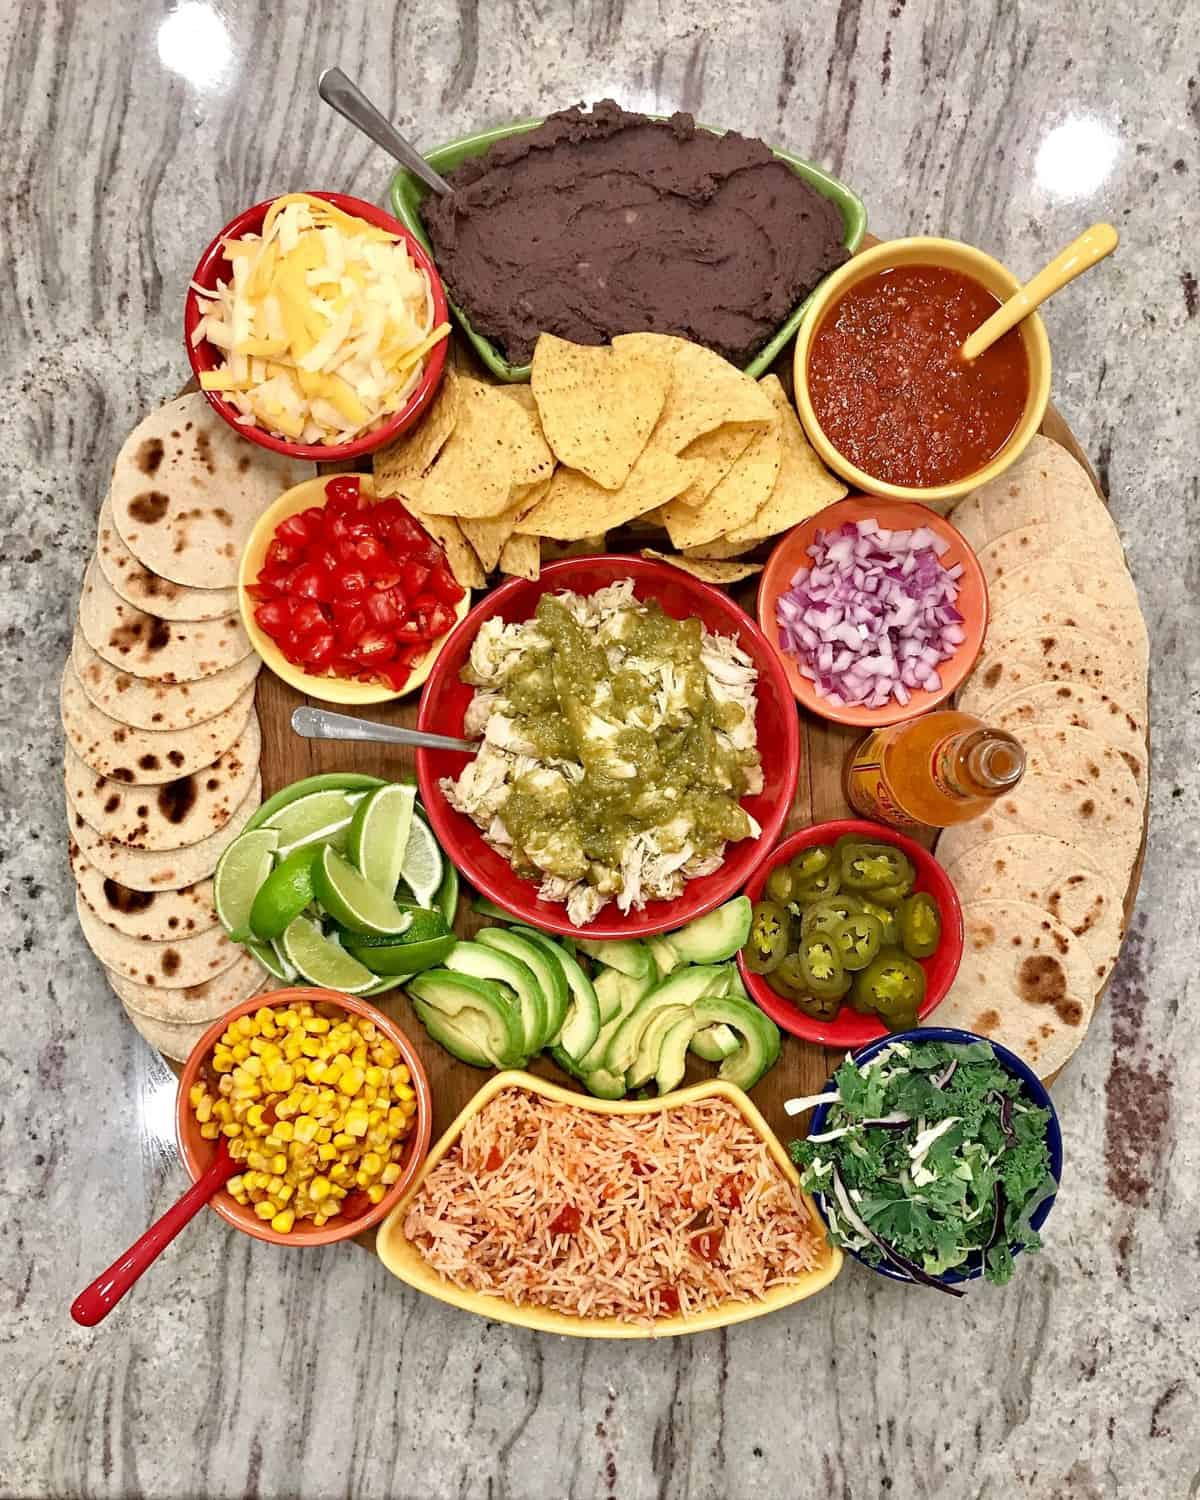 Build-Your-Own Chicken Taco Board by The BakerMama